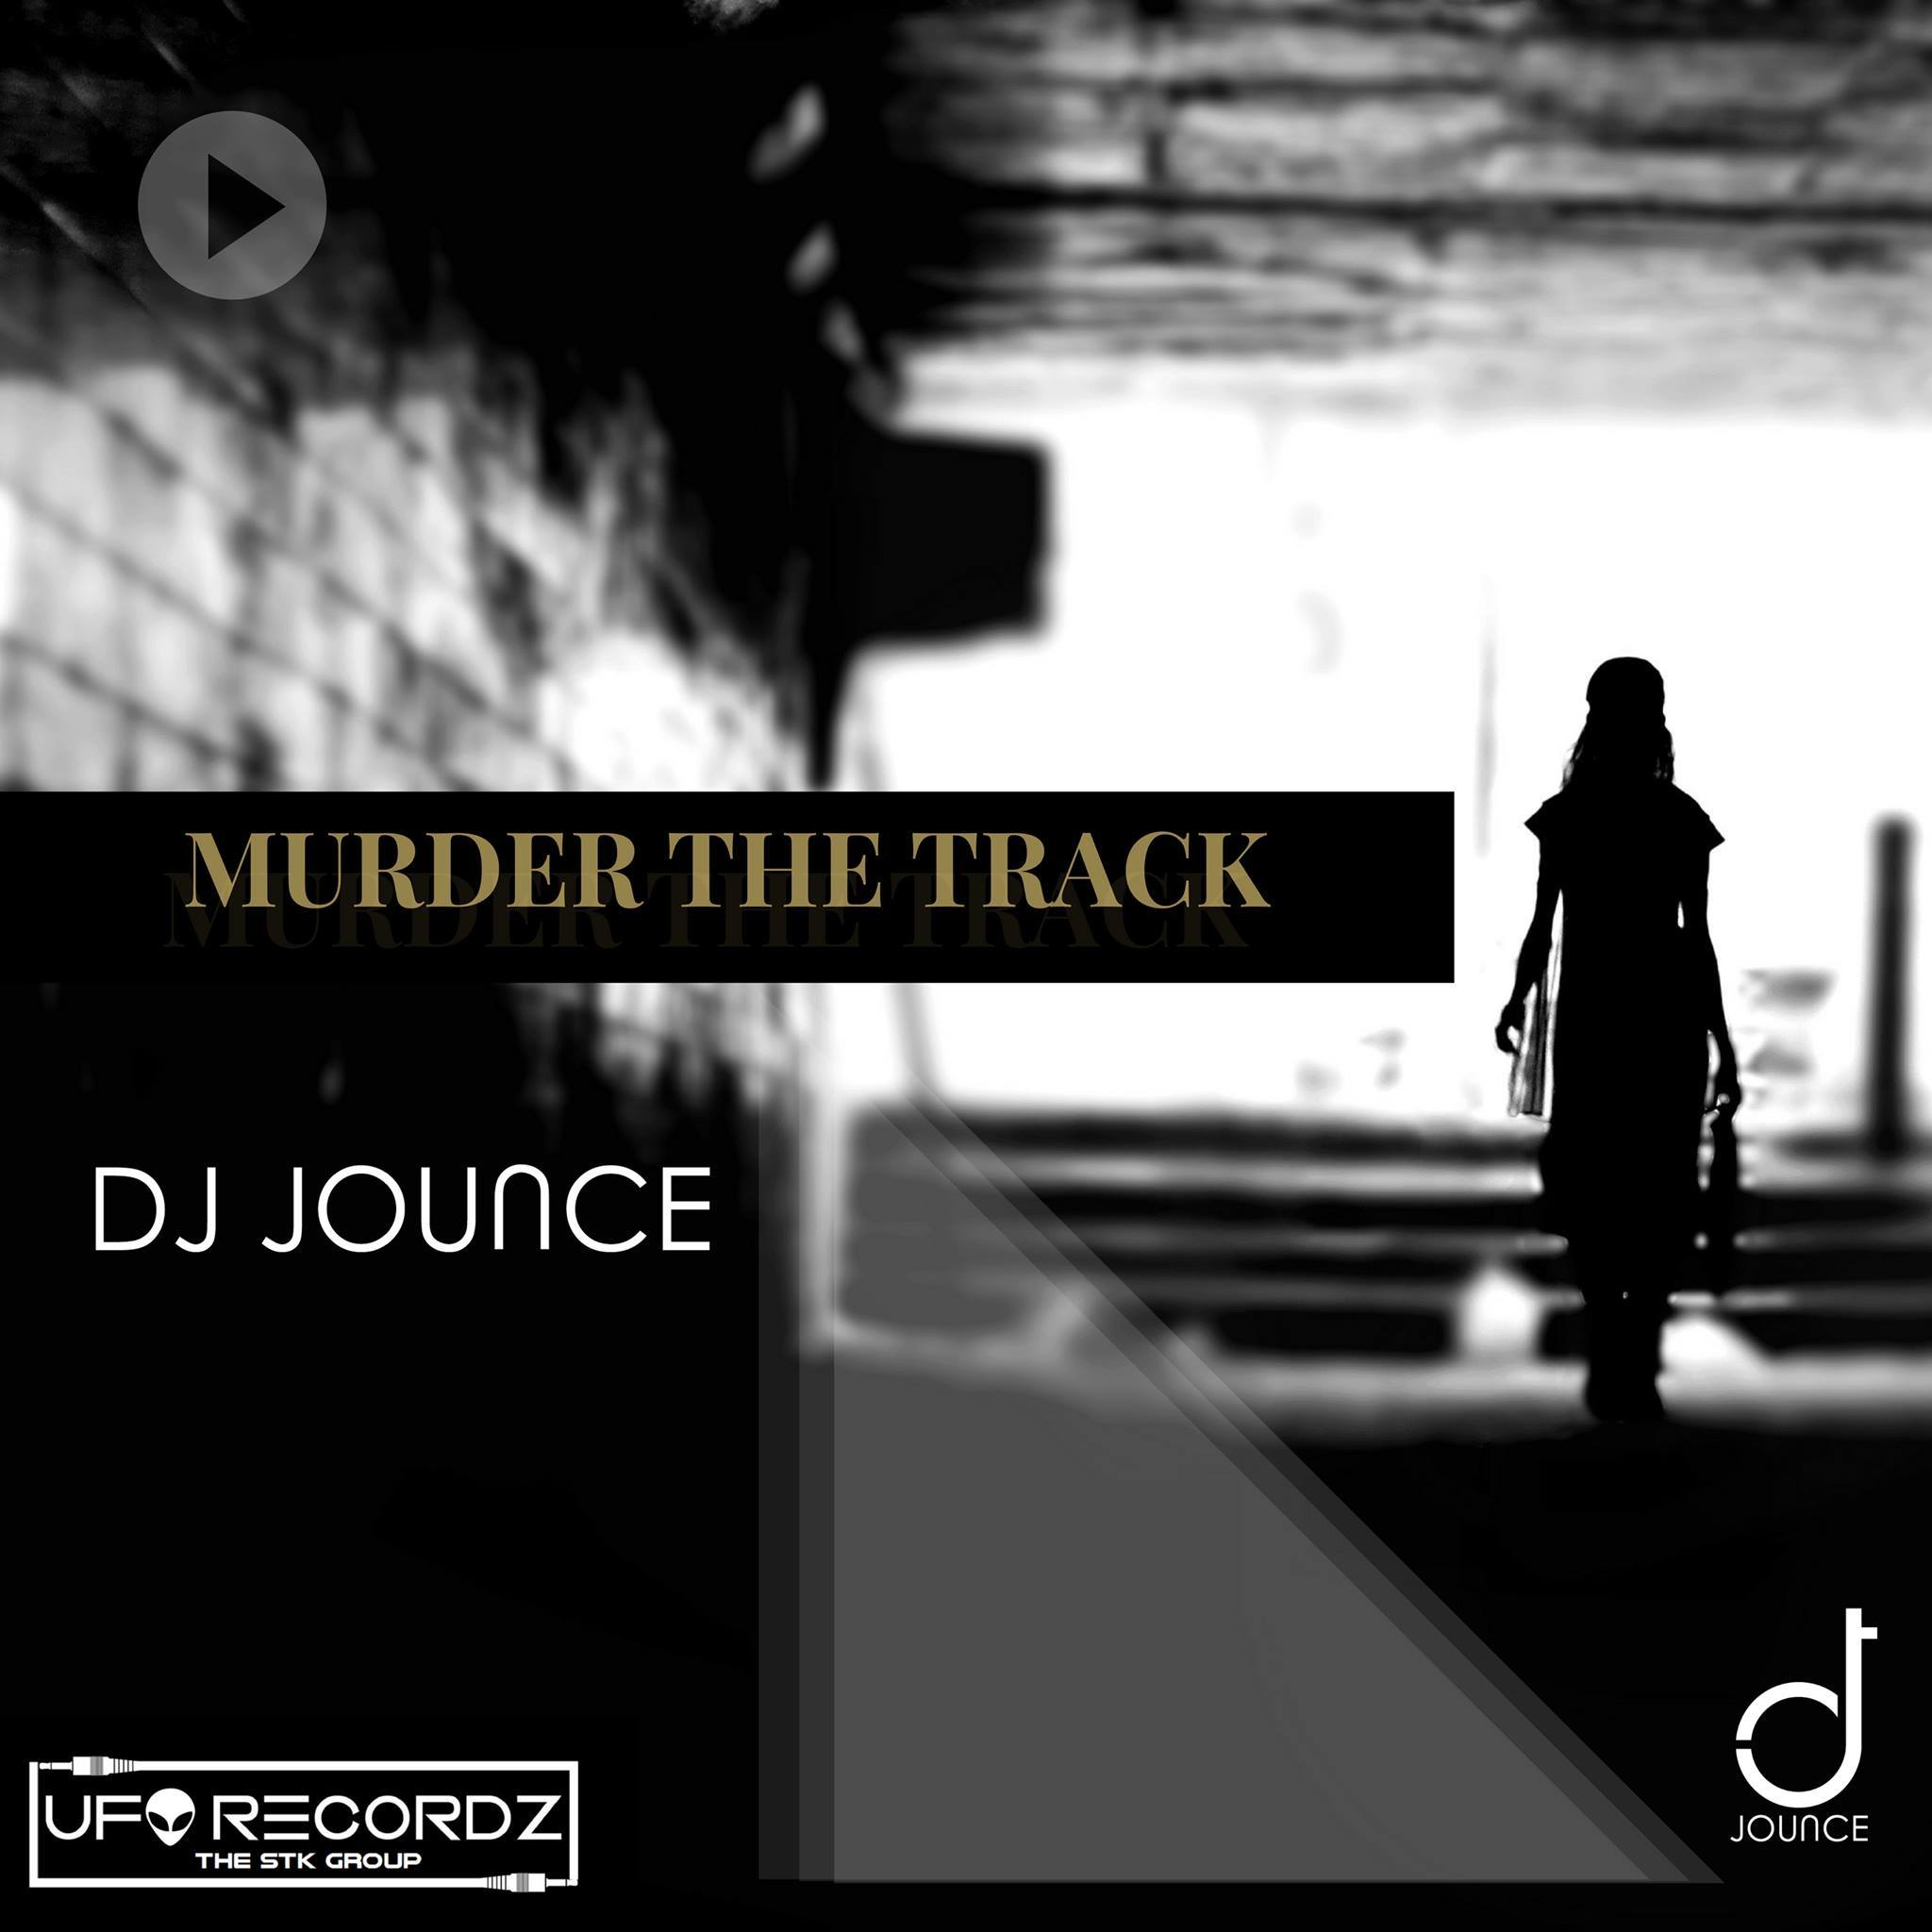 Murder the Track